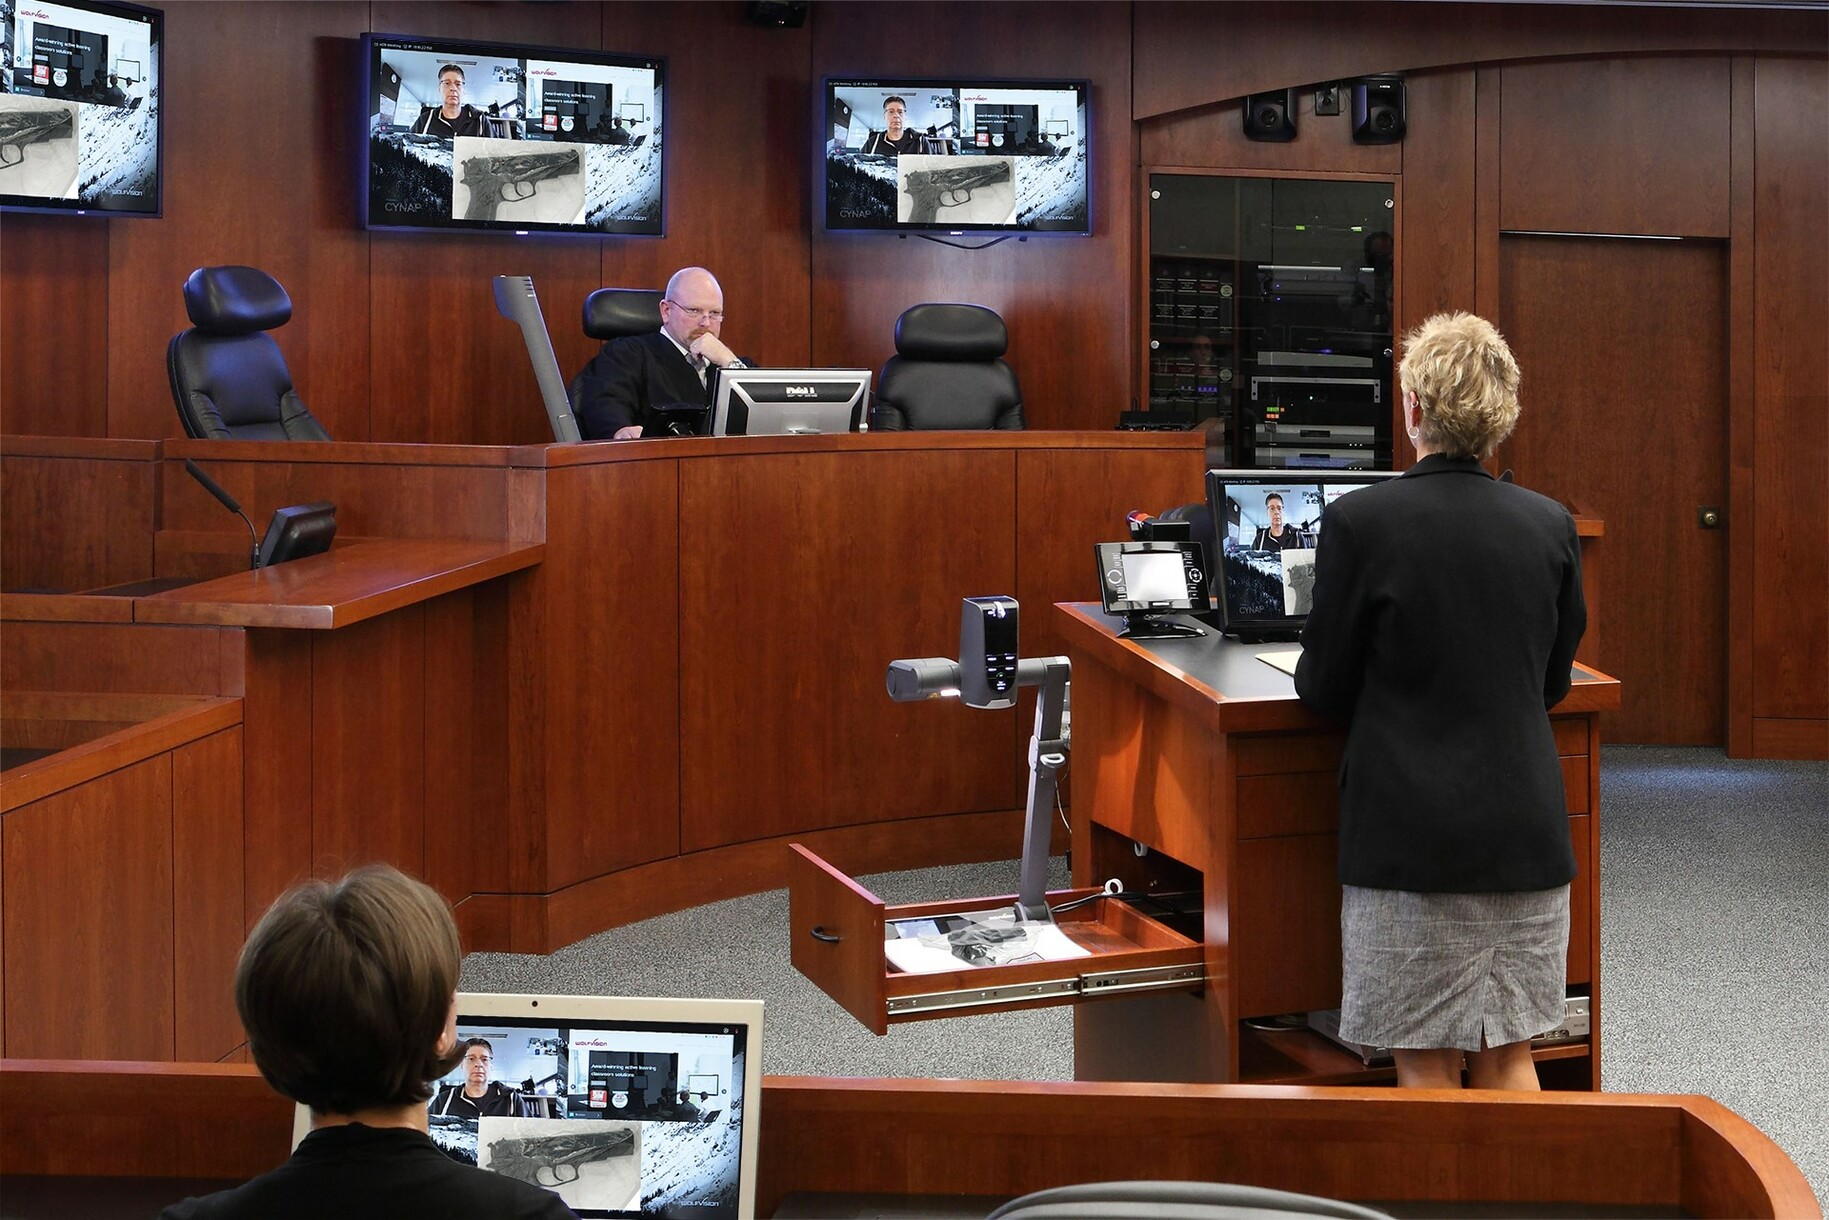 Enabling both in-person and remote participation in the court proceedings.